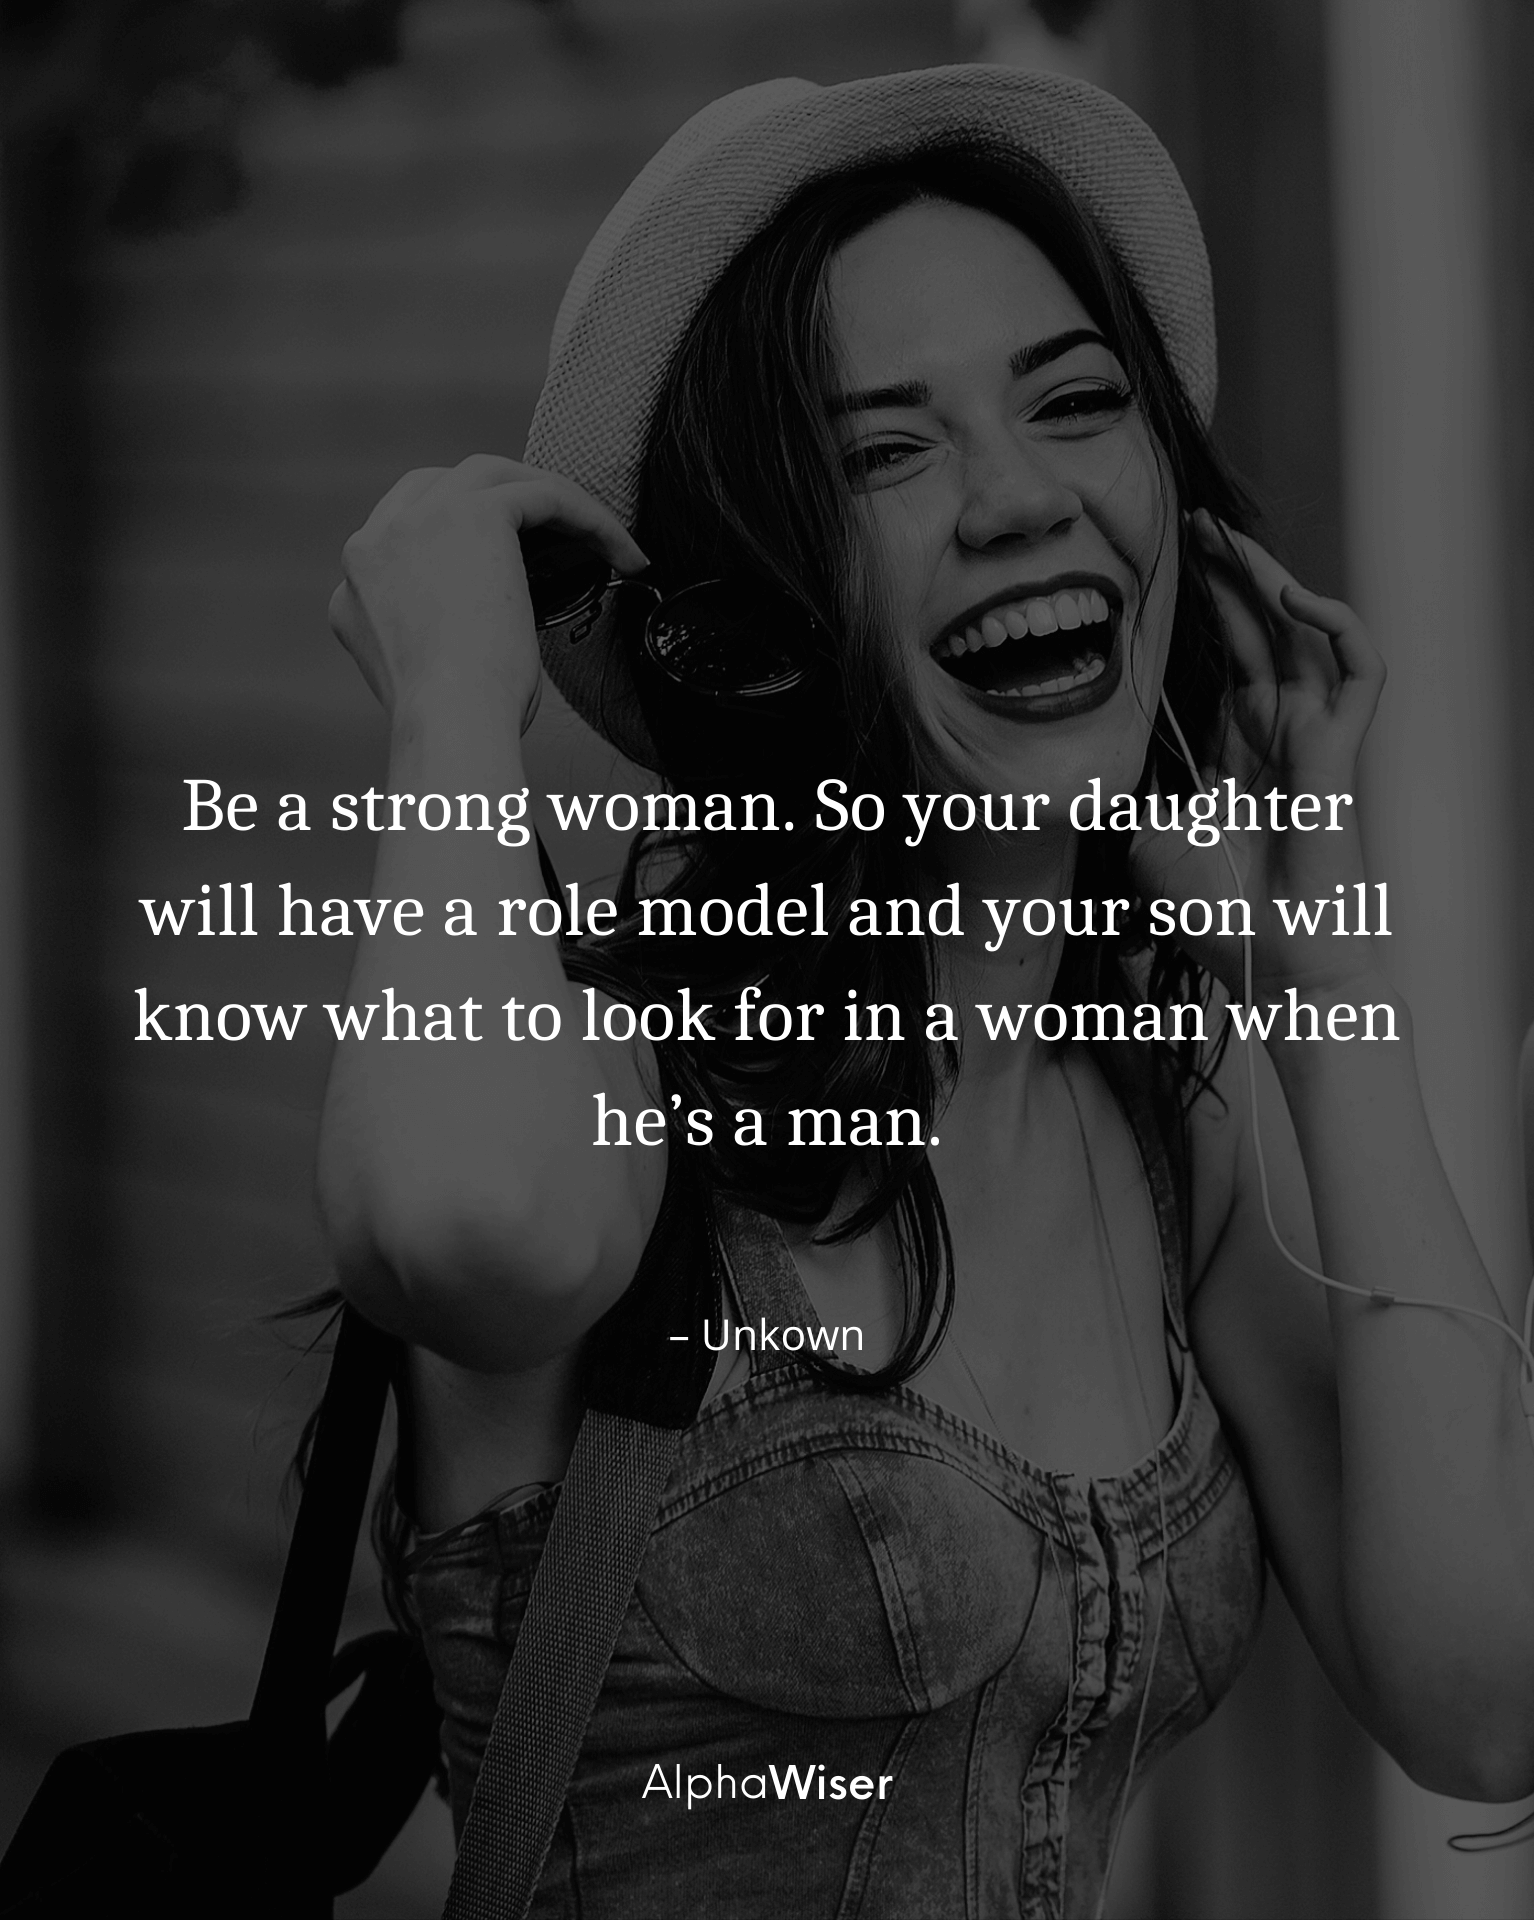 Be a strong woman. So your daughter will have a role model and your son will know what to look for in a woman when he's a man.